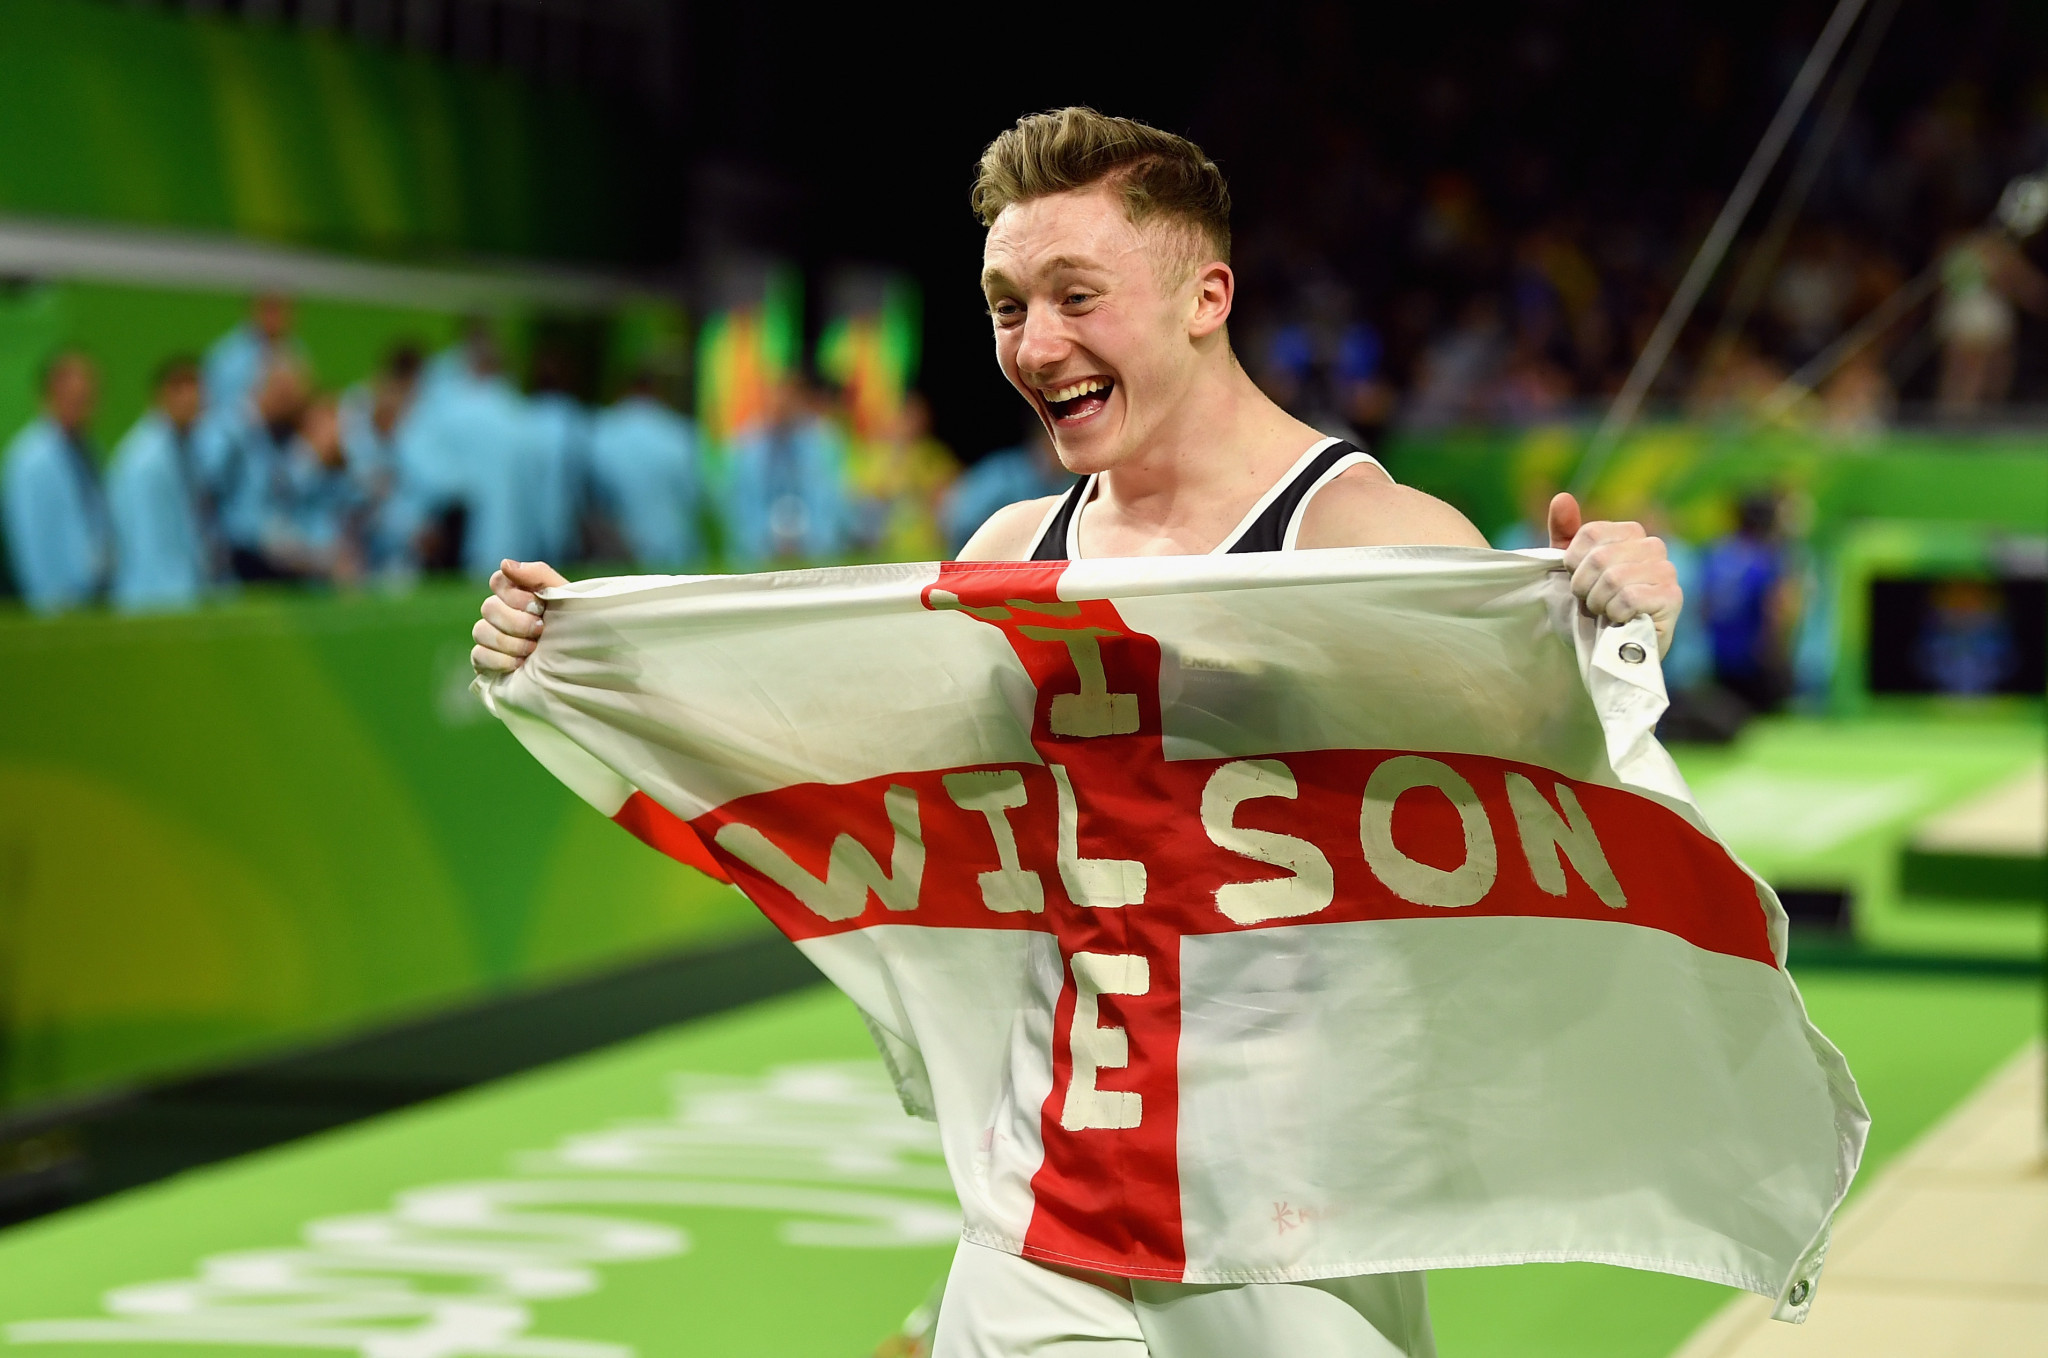 Wilson dazzles on horizontal bar to clinch men's all-around title at Gold Coast 2018